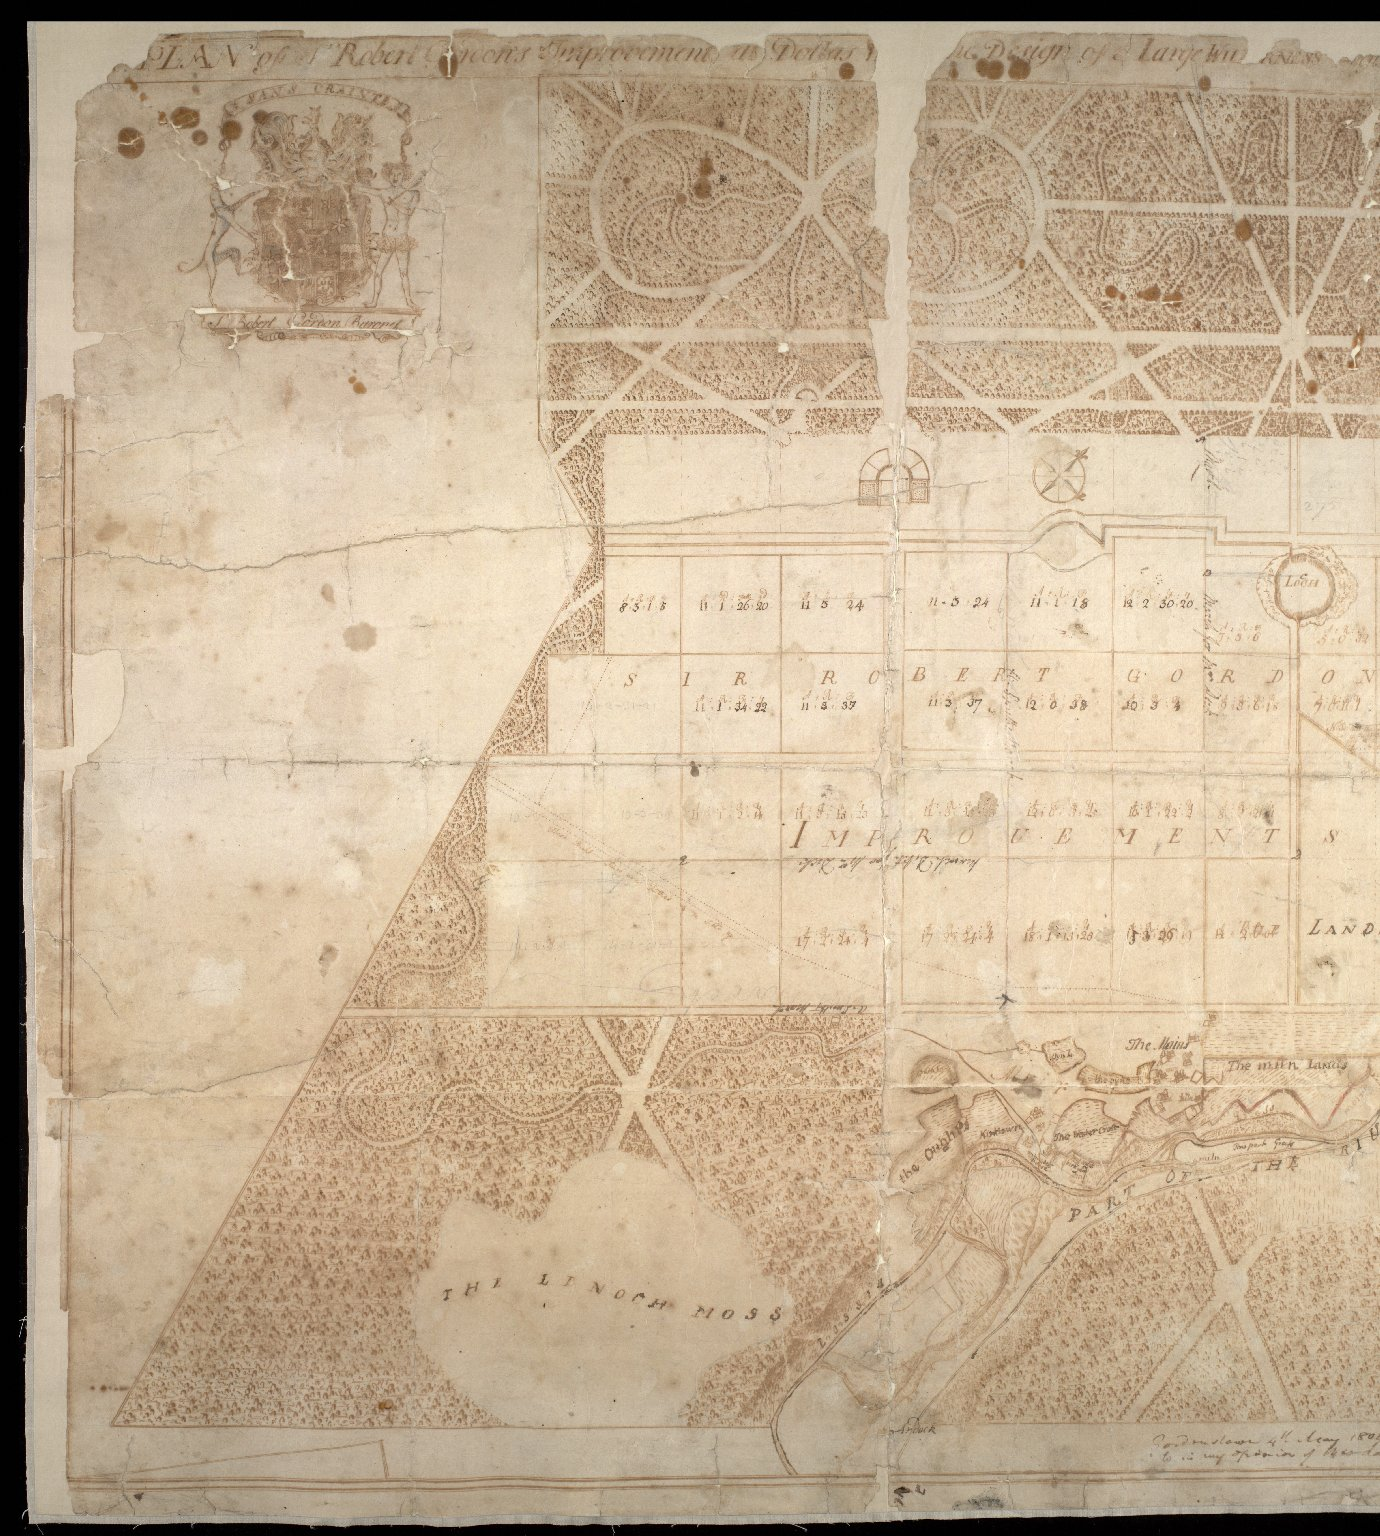 Plan of Sr Robert Gordons Improvements at Dallas [with] the Design of a Large Wilderness to be pla[nted] [2 of 2]